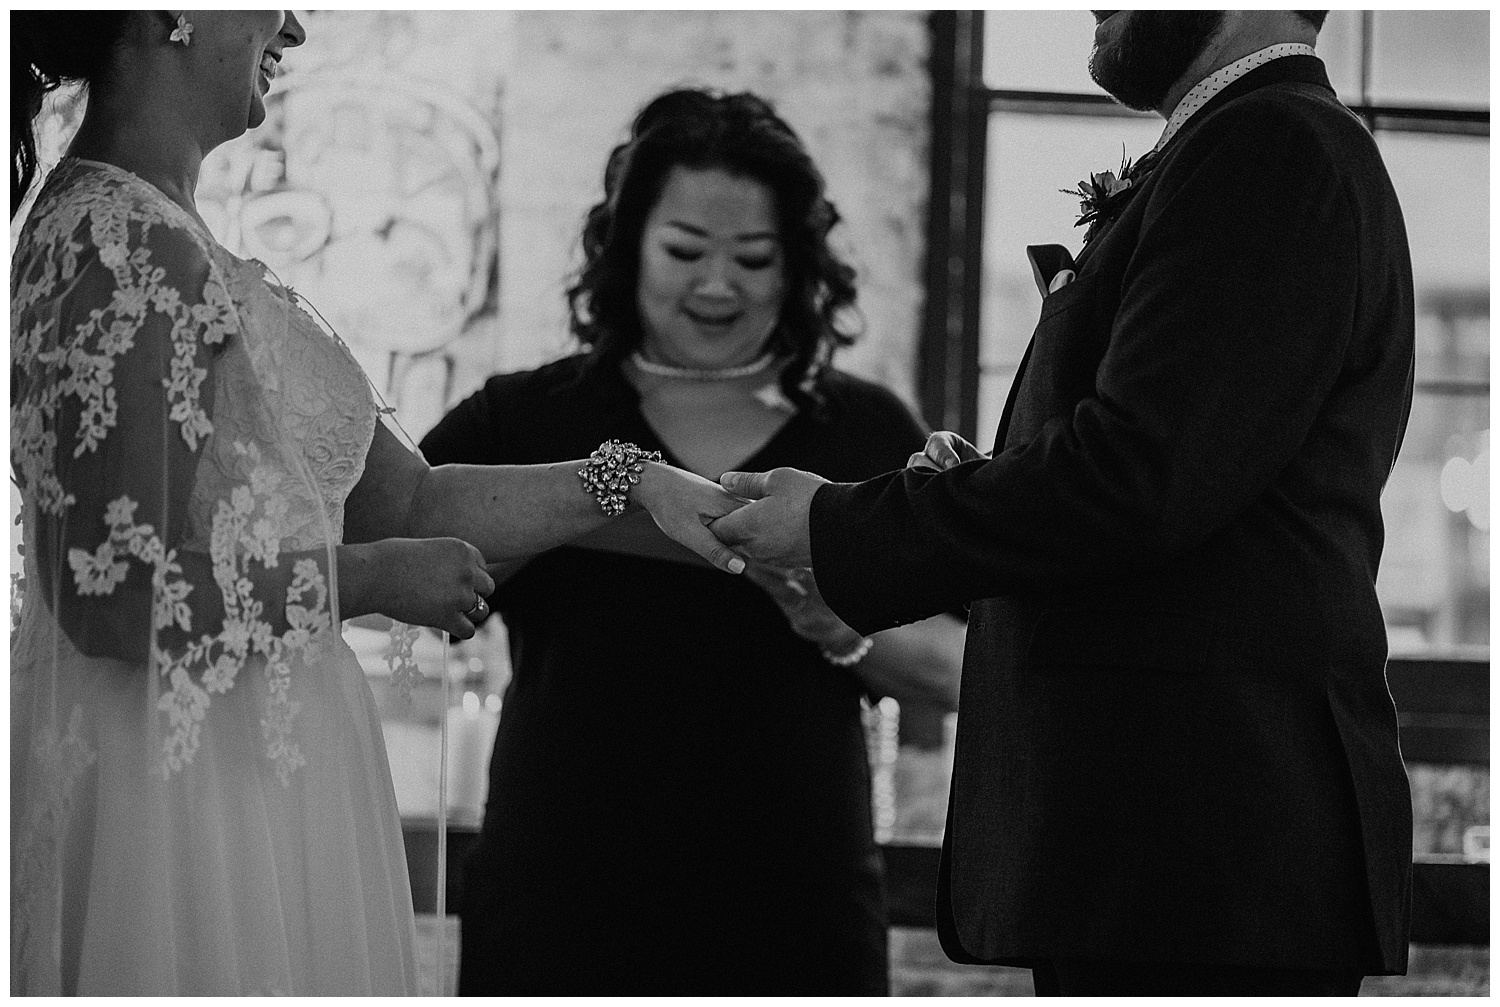 Katie Marie Photography | Archeo Wedding Arta Gallery Wedding | Distillery District Wedding | Toronto Wedding Photographer | Hamilton Toronto Ontario Wedding Photographer |_0108.jpg